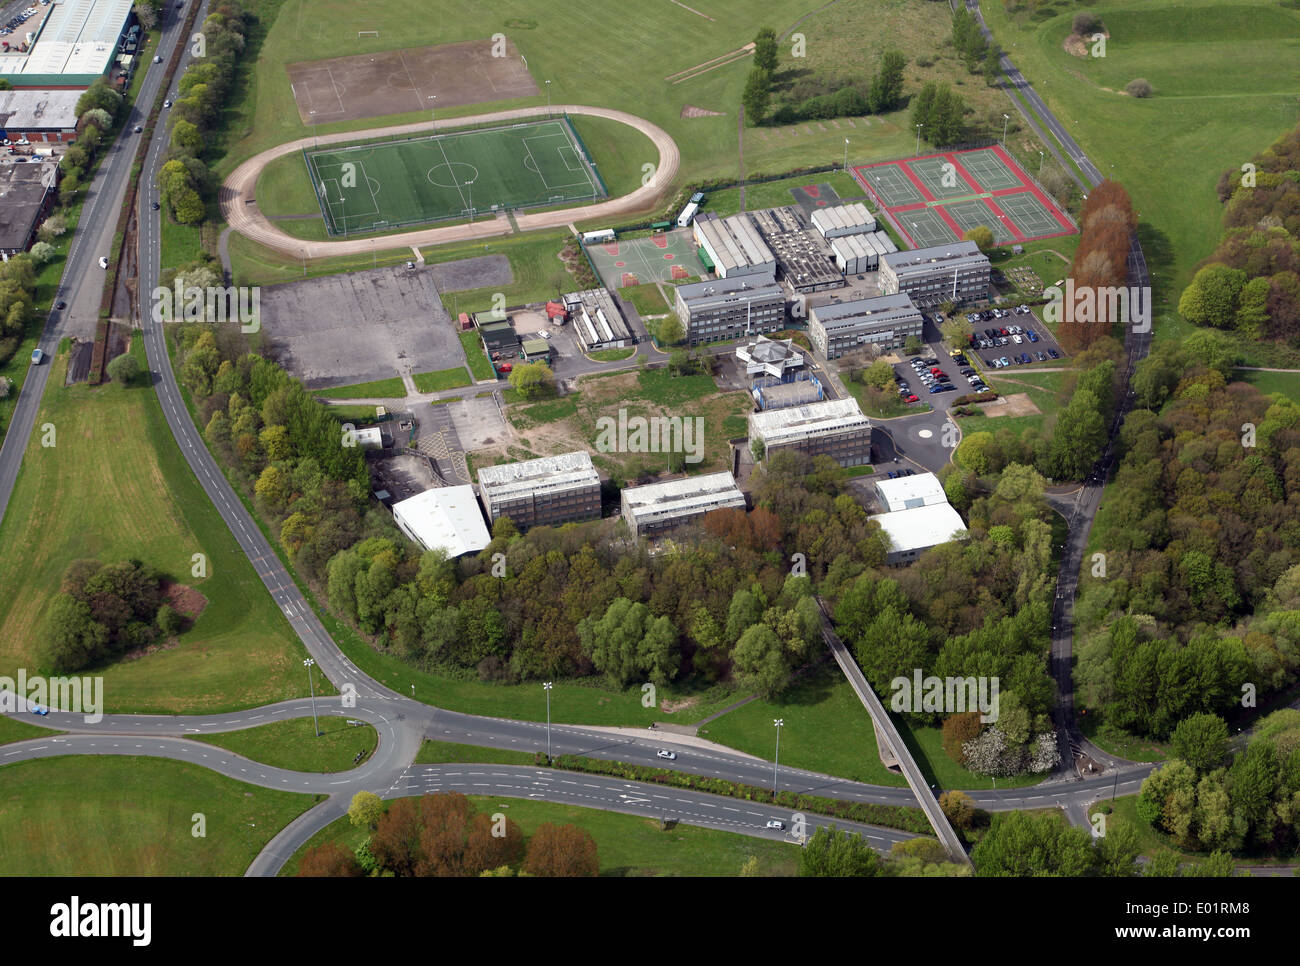 aerial view of Glenburn Sports College in Skelmersdale - Stock Image